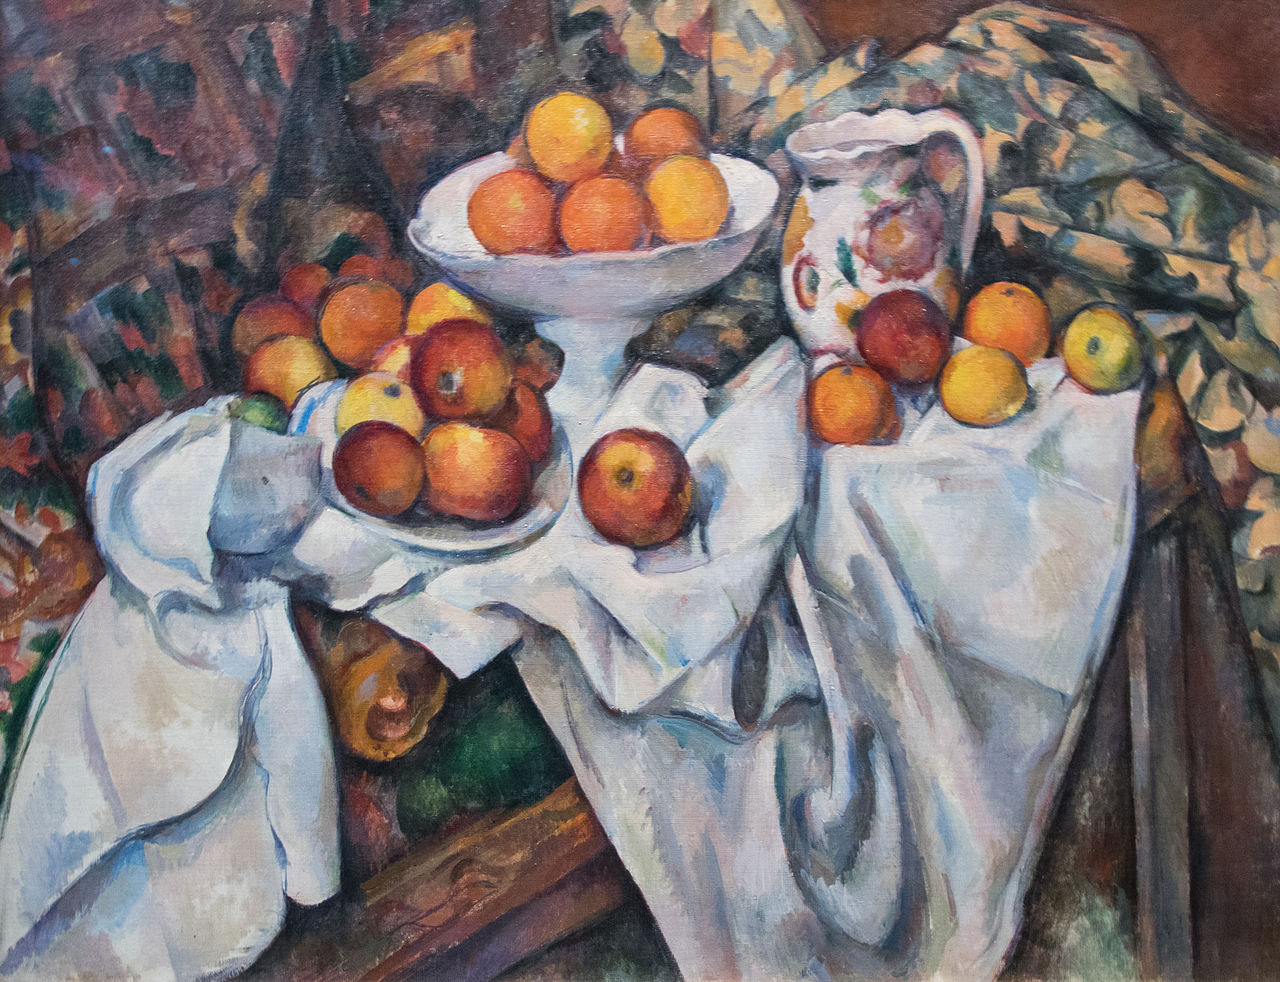 Apples and Oranges , Paul Cezanne, c. 1899, (Image courtesy of Musee d'Orsay)